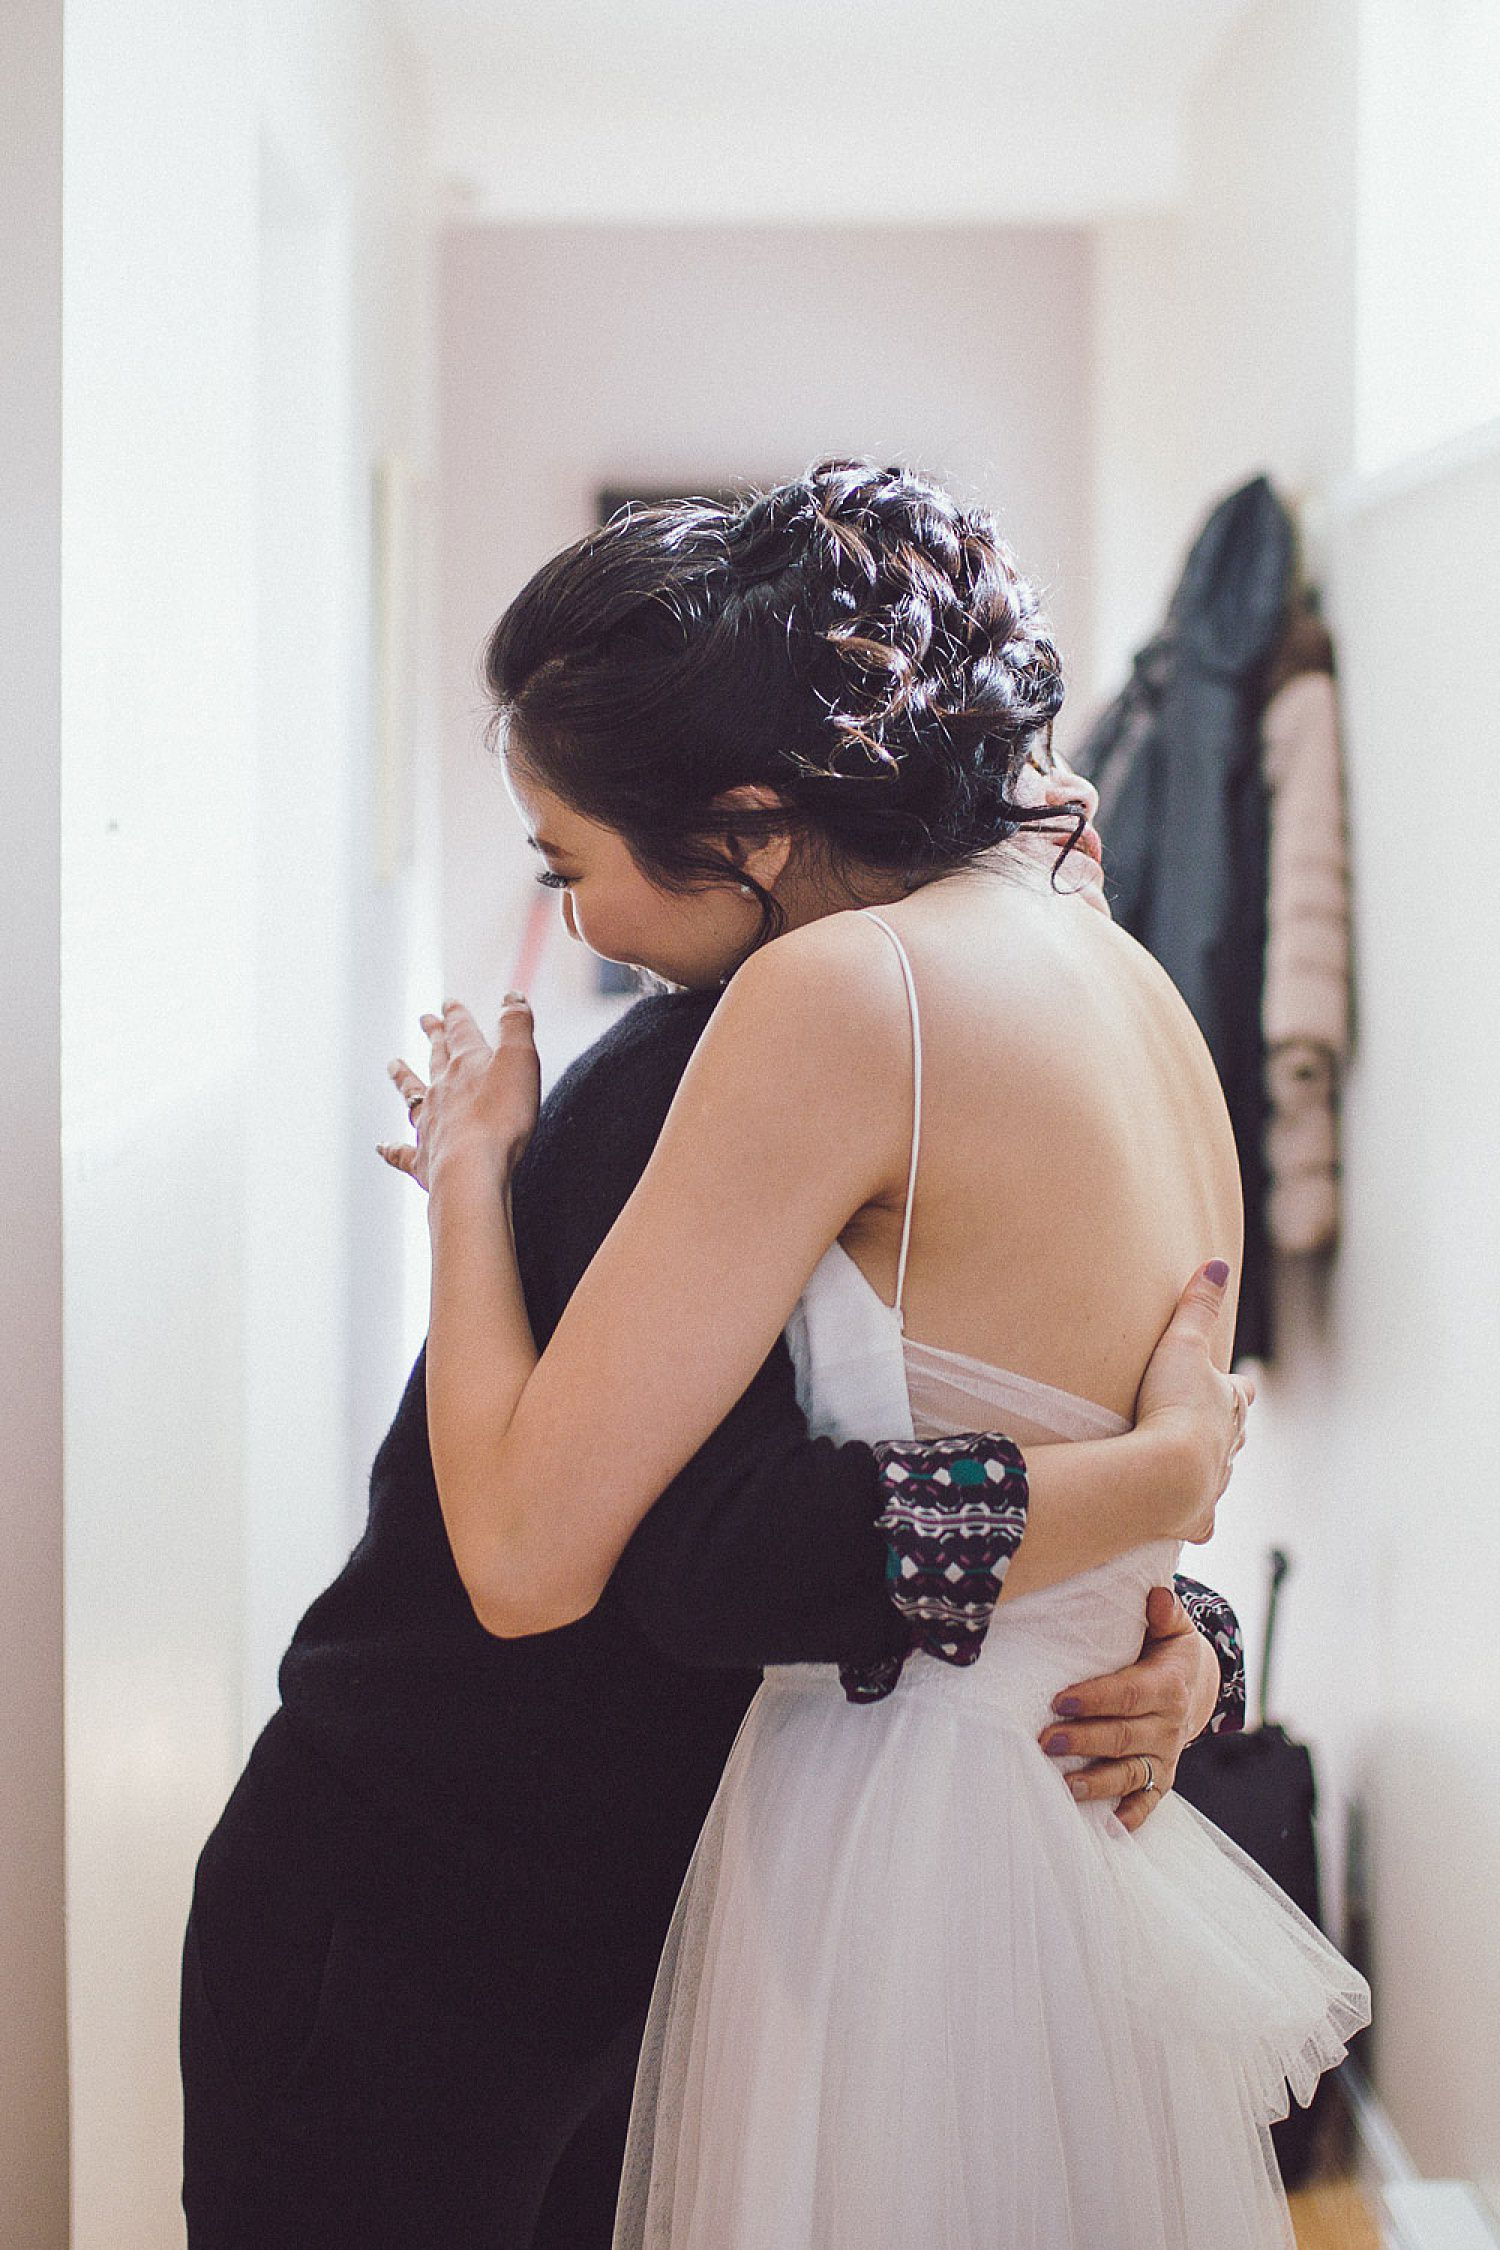 Bride giving her mom a hug